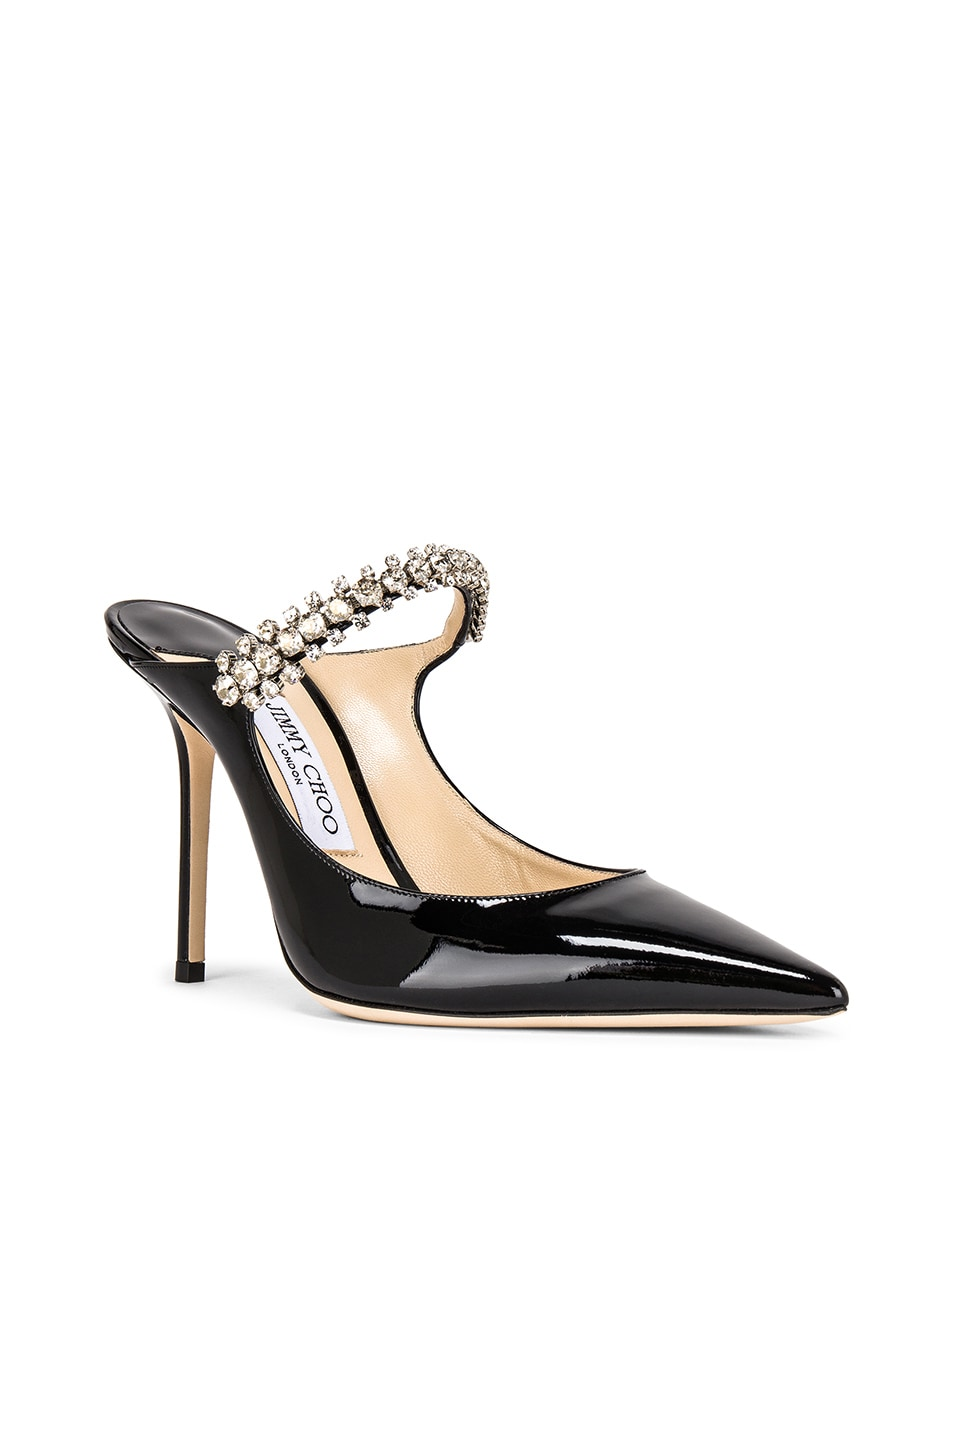 Image 2 of Jimmy Choo Bing 100 Patent Leather Mule in Black